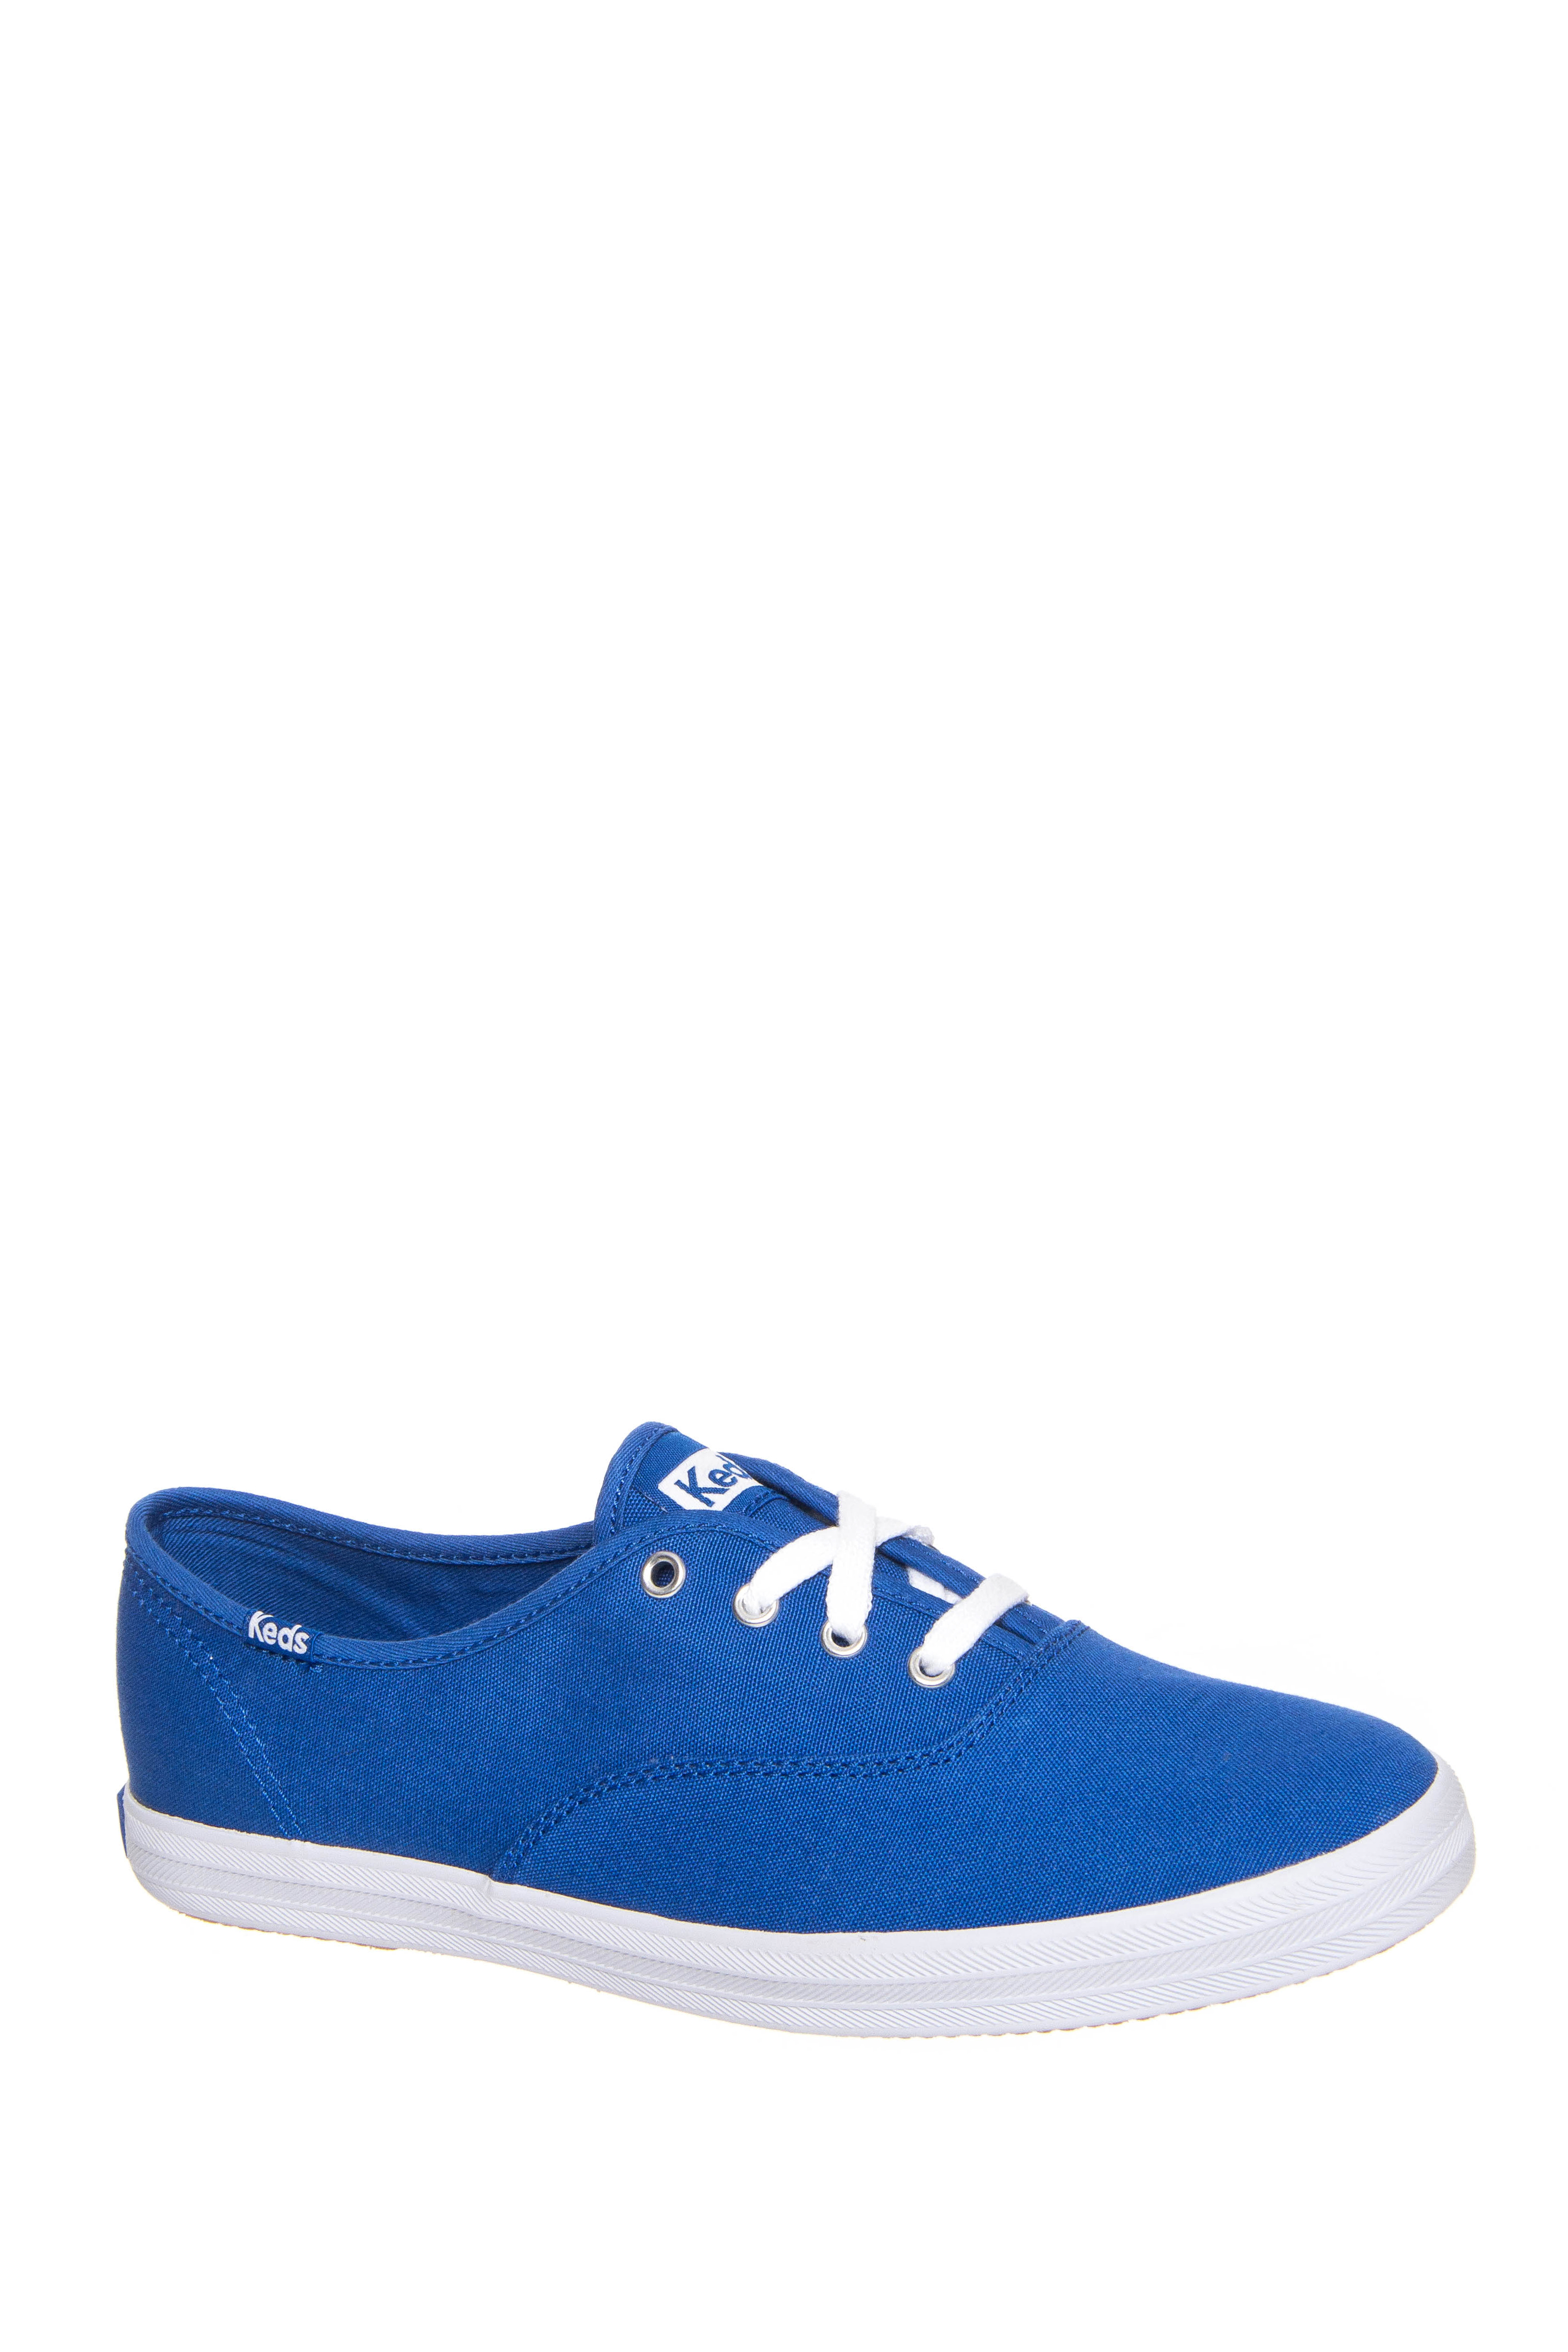 Keds Champion OX Low Top Sneakers - Blue